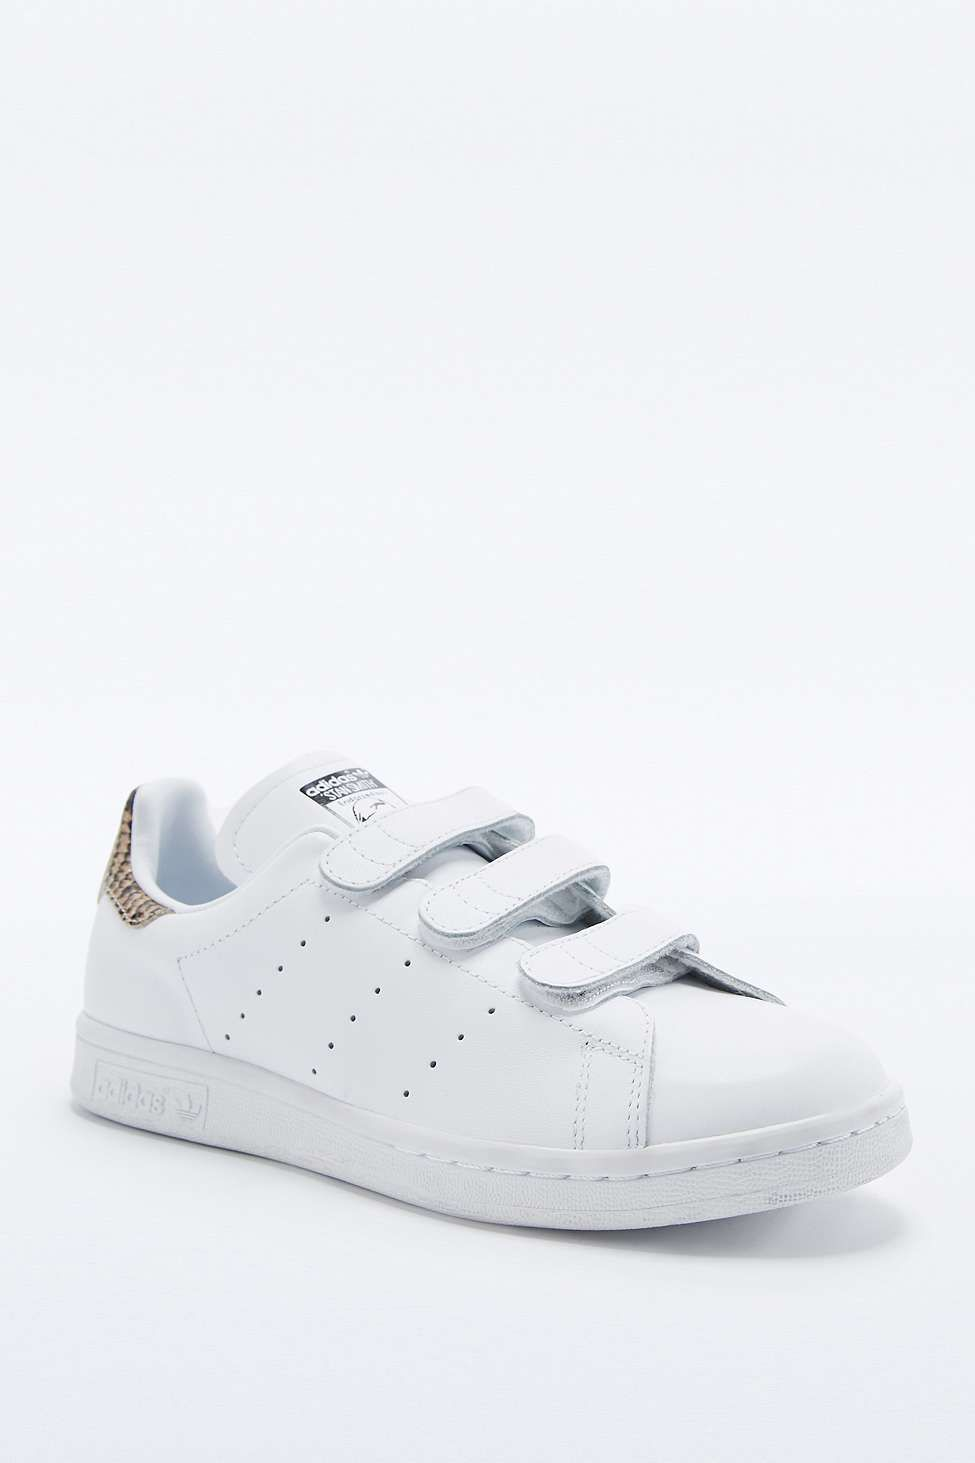 adidas Originals - Baskets Stan Smith blanches détail ...